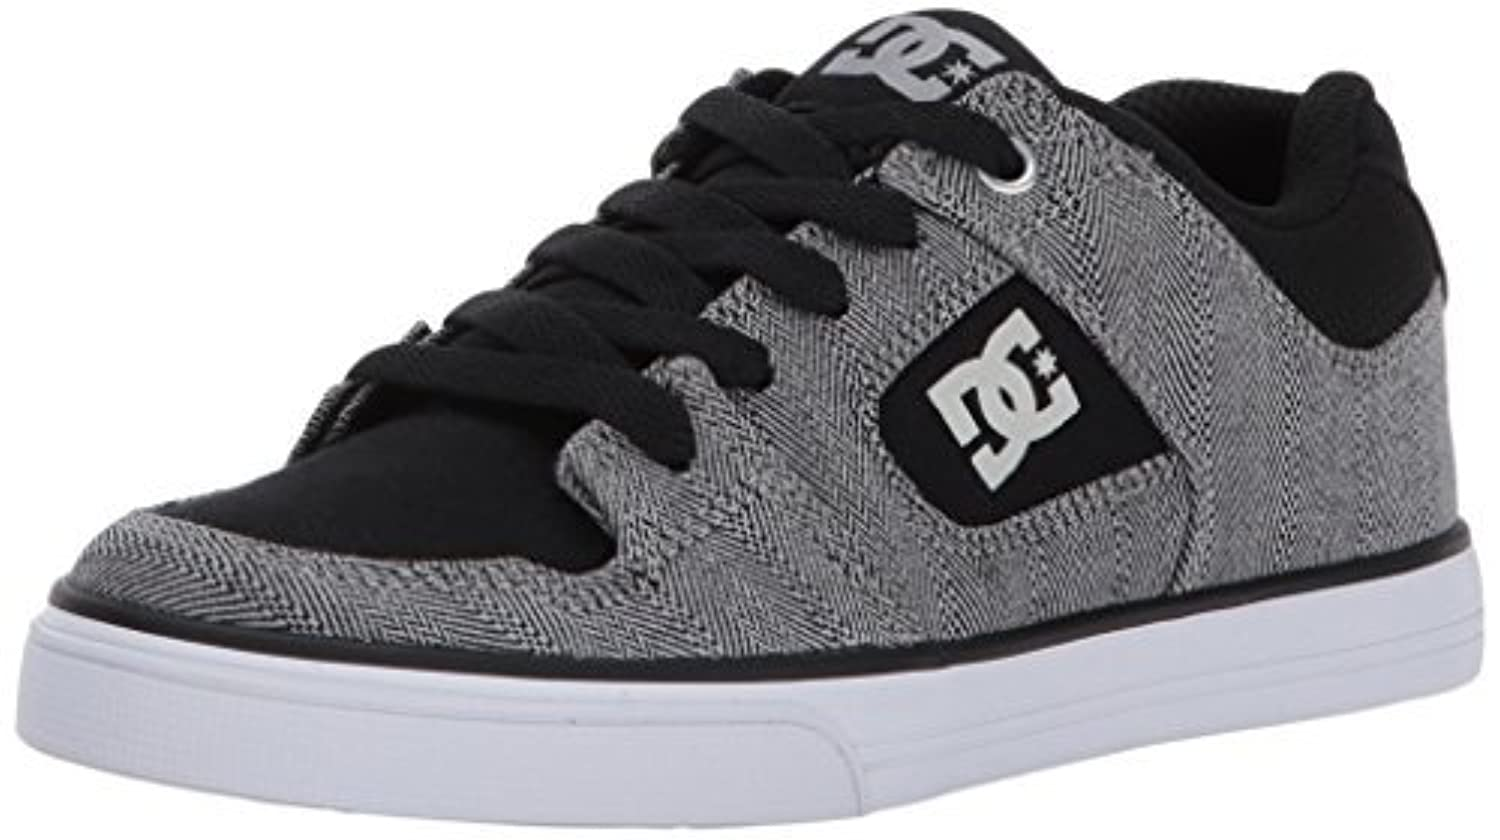 DC Men's Pure TX SE Skate Shoe Black/Grey/Black 5.5 M US Big Kid [並行輸入品]